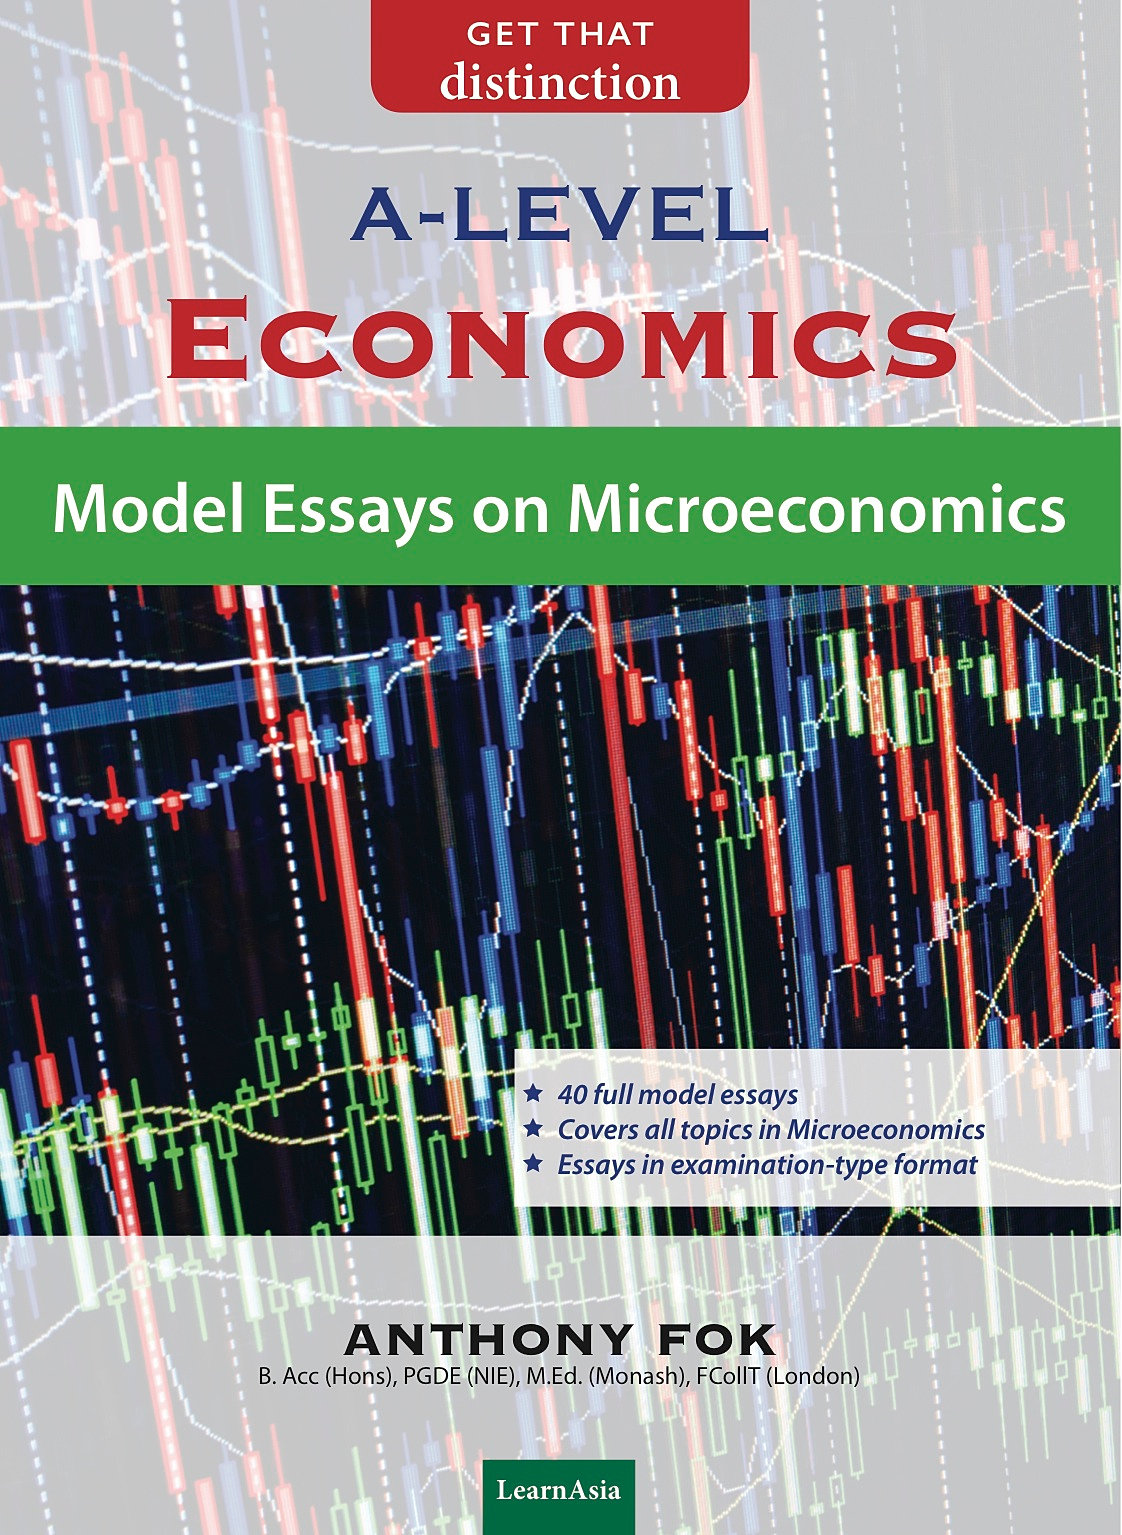 microeconomics essay topics life essay topics life essay topics  jc economics tuition singapore a level economics microeconomics jc economics tuition singapore a level economics microeconomics